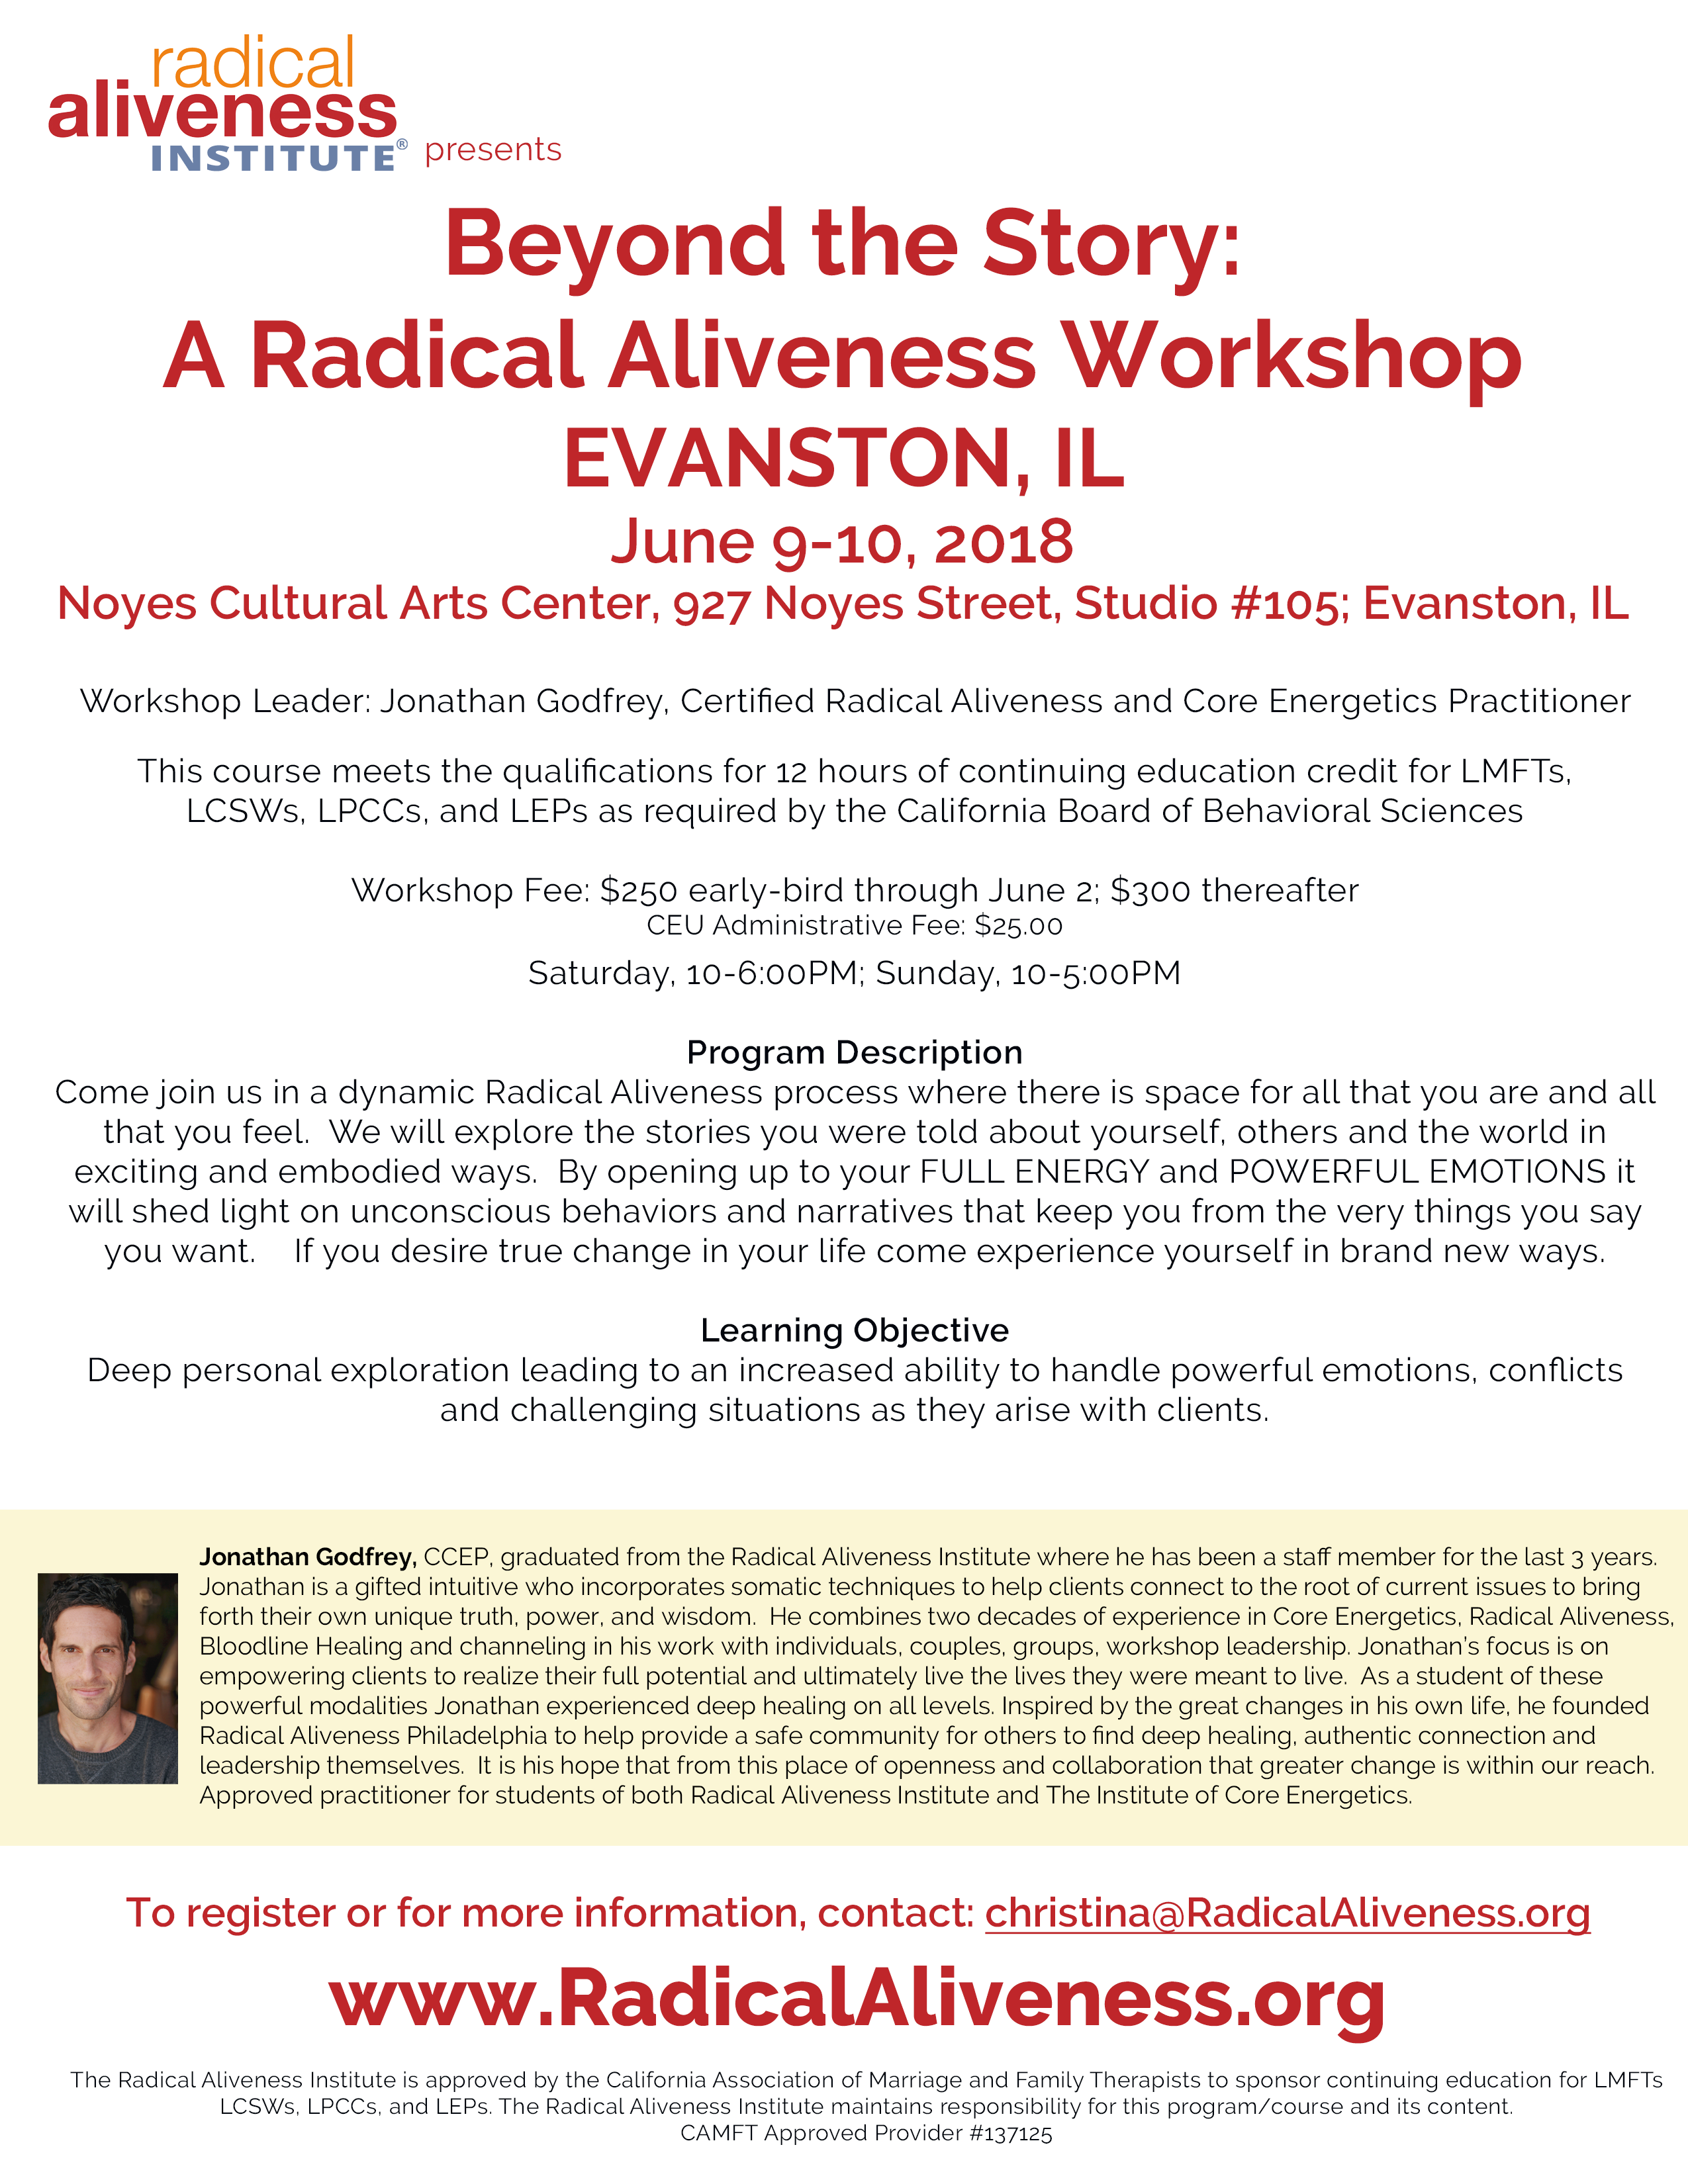 Beyond the Story: A Radical Aliveness Workshop @ Noyes Cultural Arts Center | Evanston | Illinois | United States